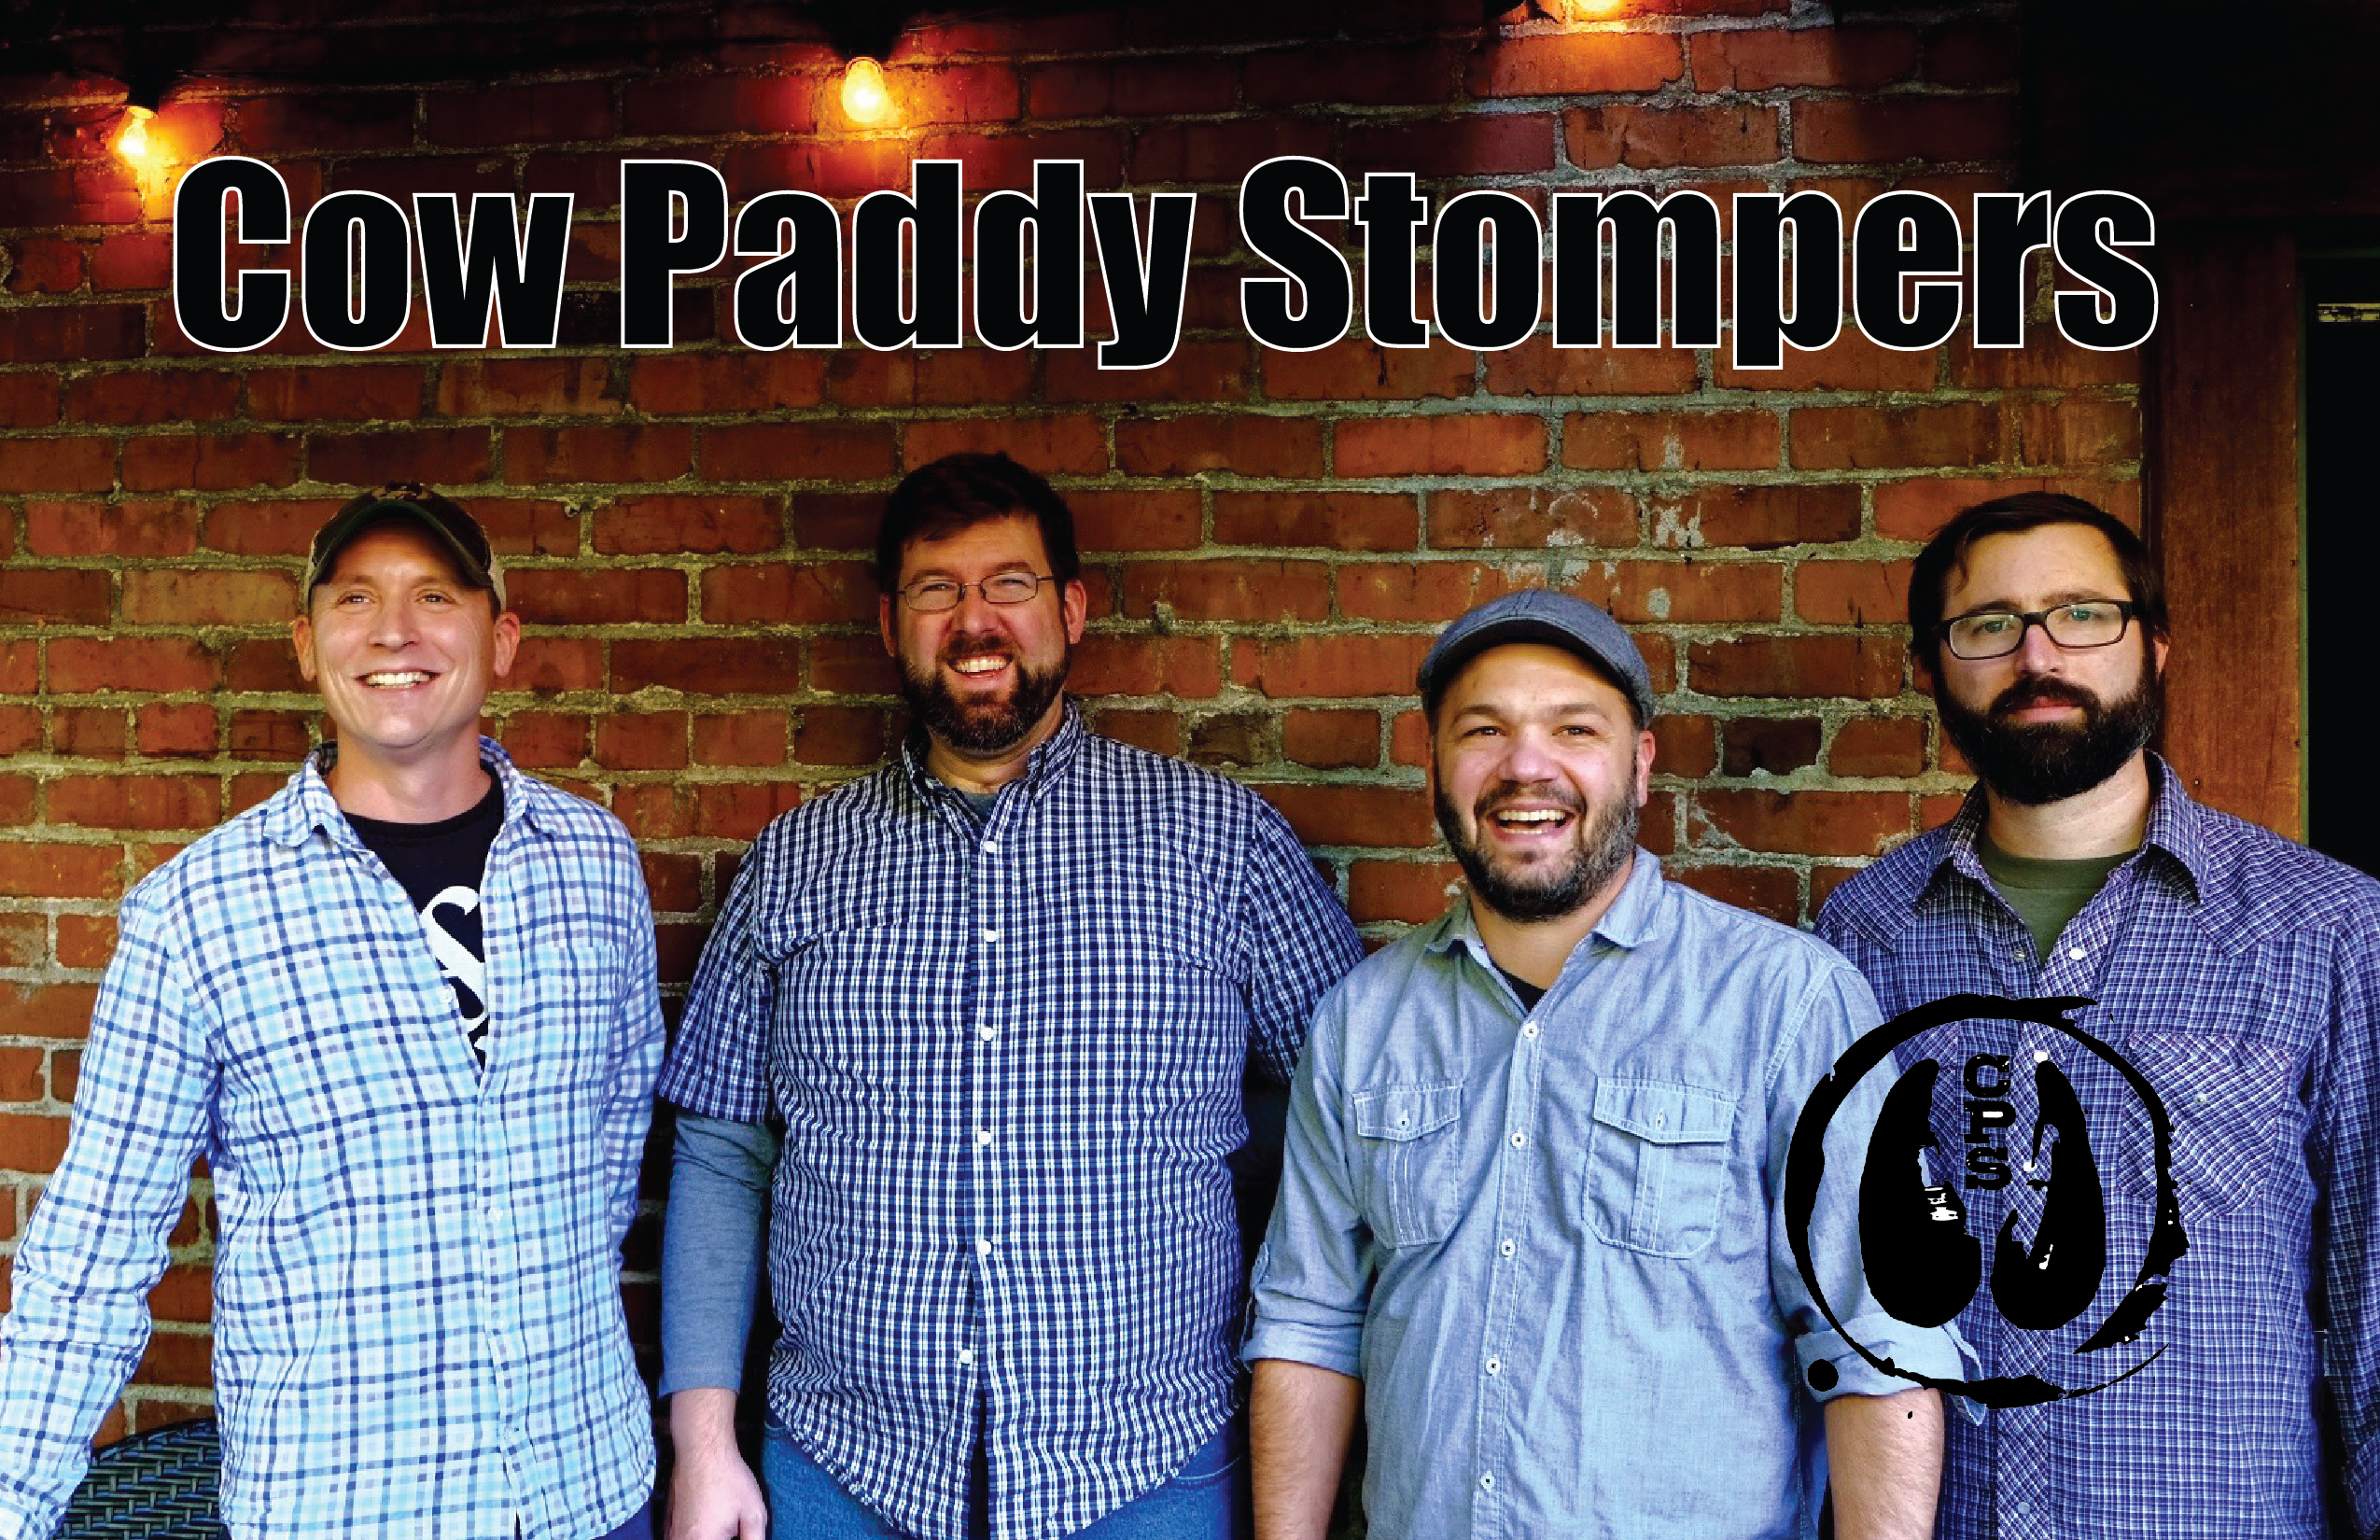 Cow Paddy Stompers